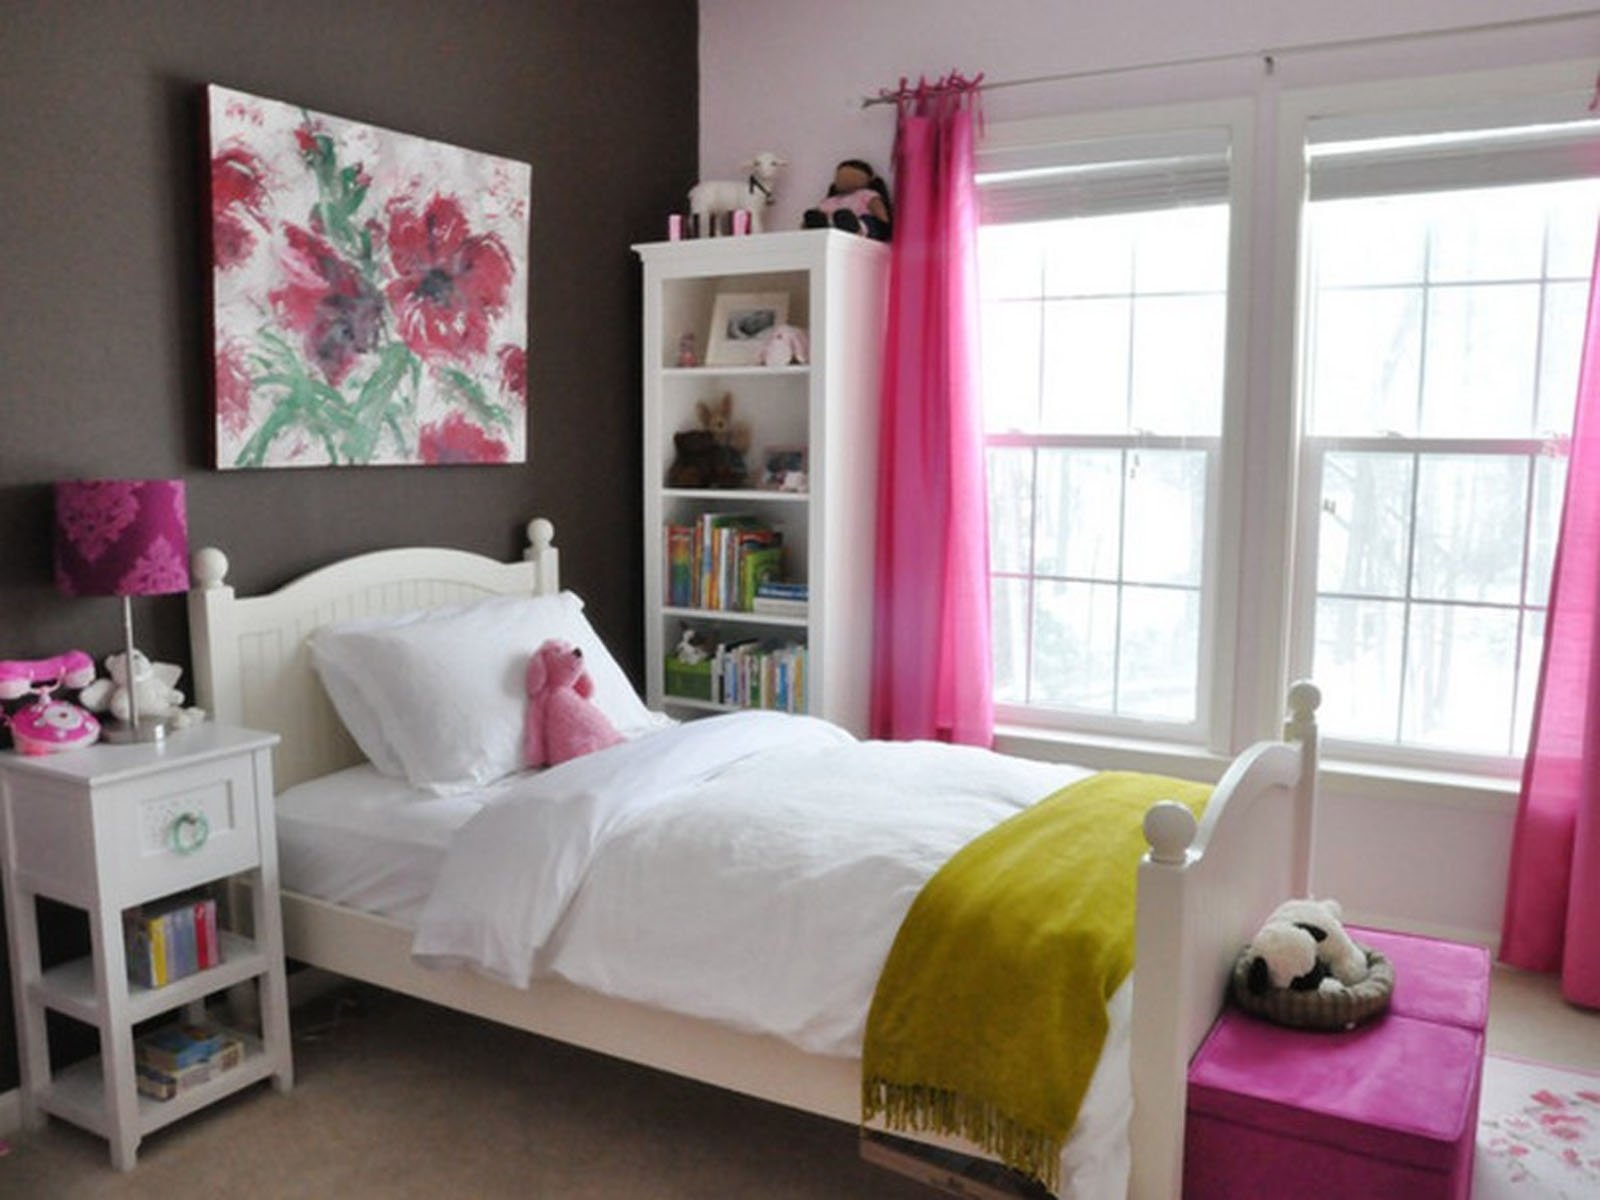 10 Pretty Teenage Bedroom Ideas For Small Rooms room girl design simple and affordable small bedroom decorating 1 2020